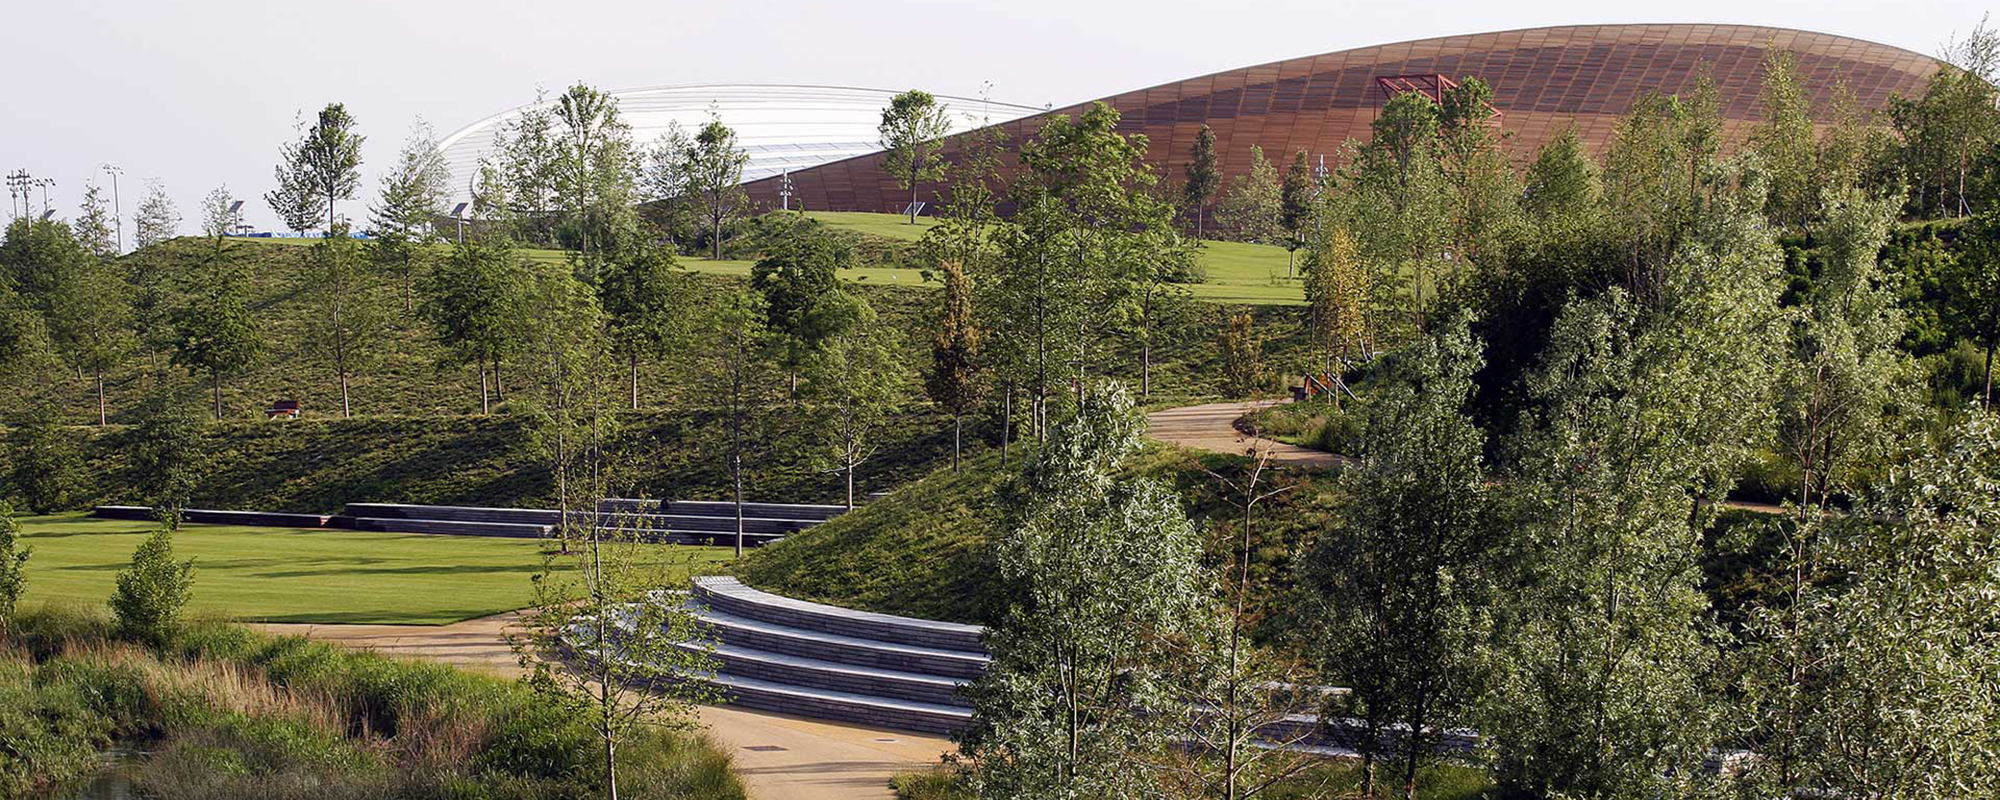 The Olympics should have been a defining moment for landscape-led design. Getty Images